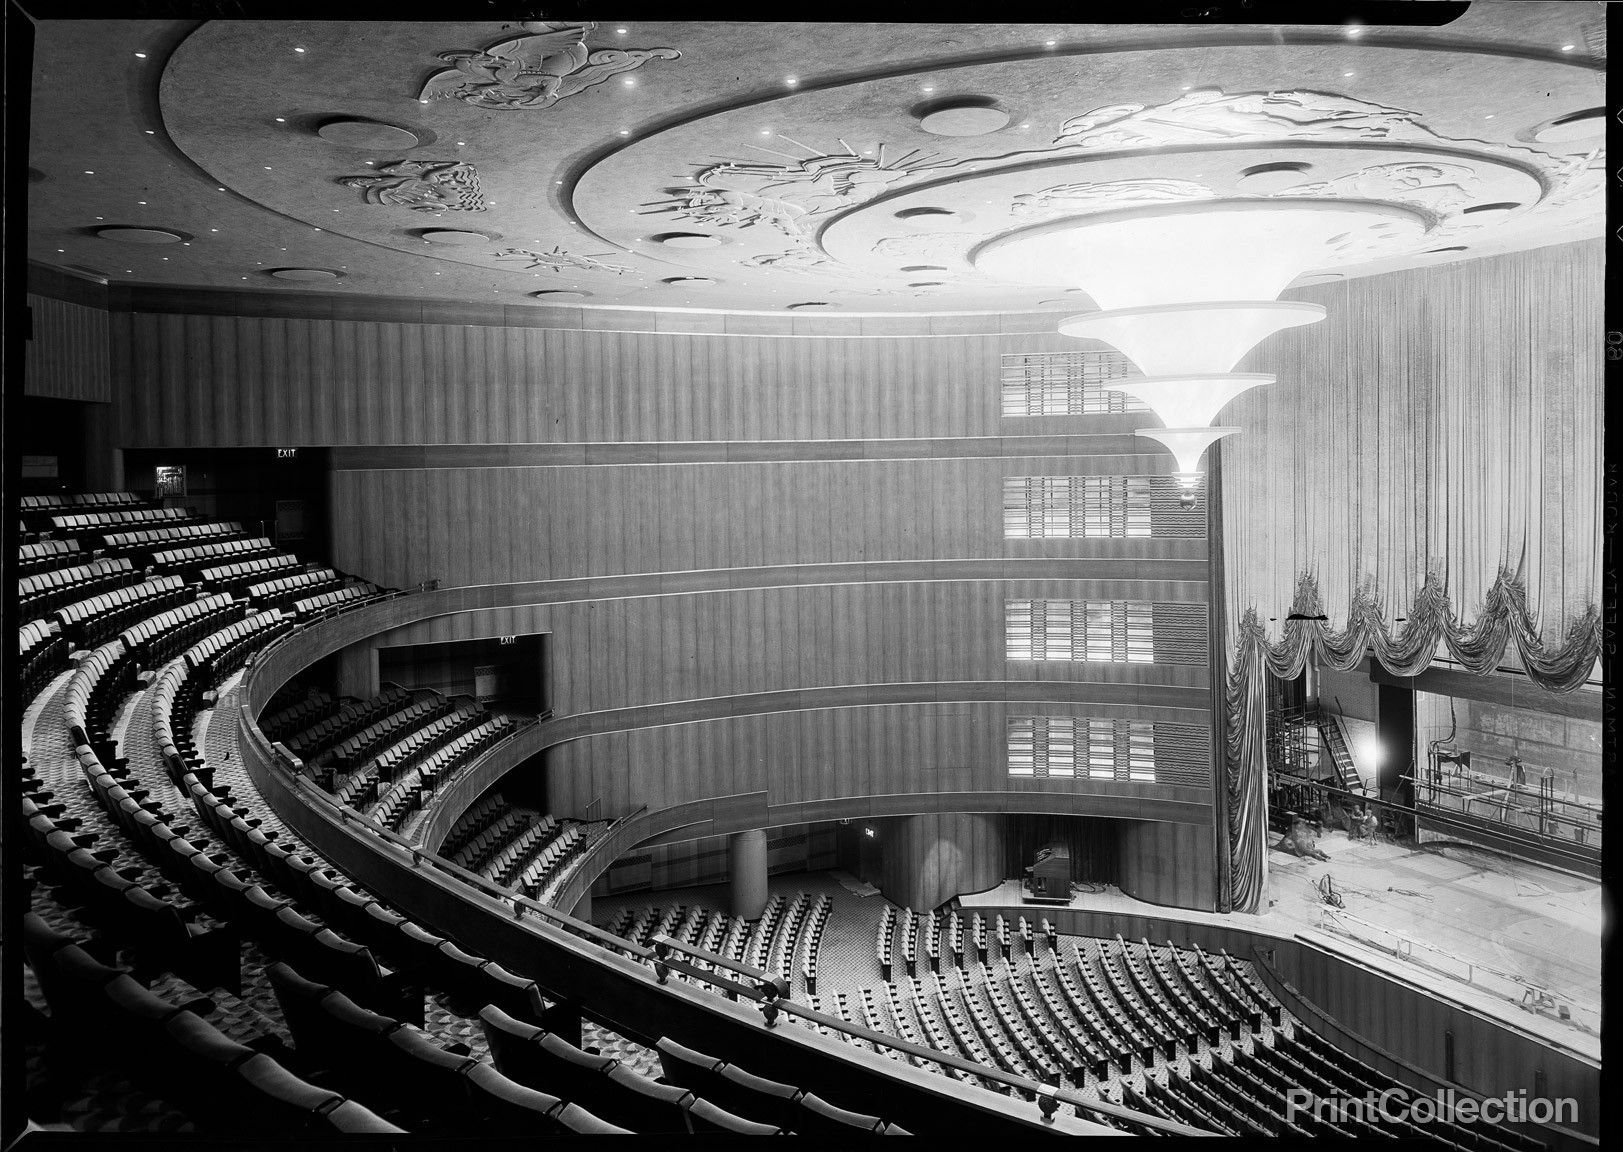 Print Collection Roxy Theatre 49th Street New York N Y Roxy Theater City Art Movie Theater